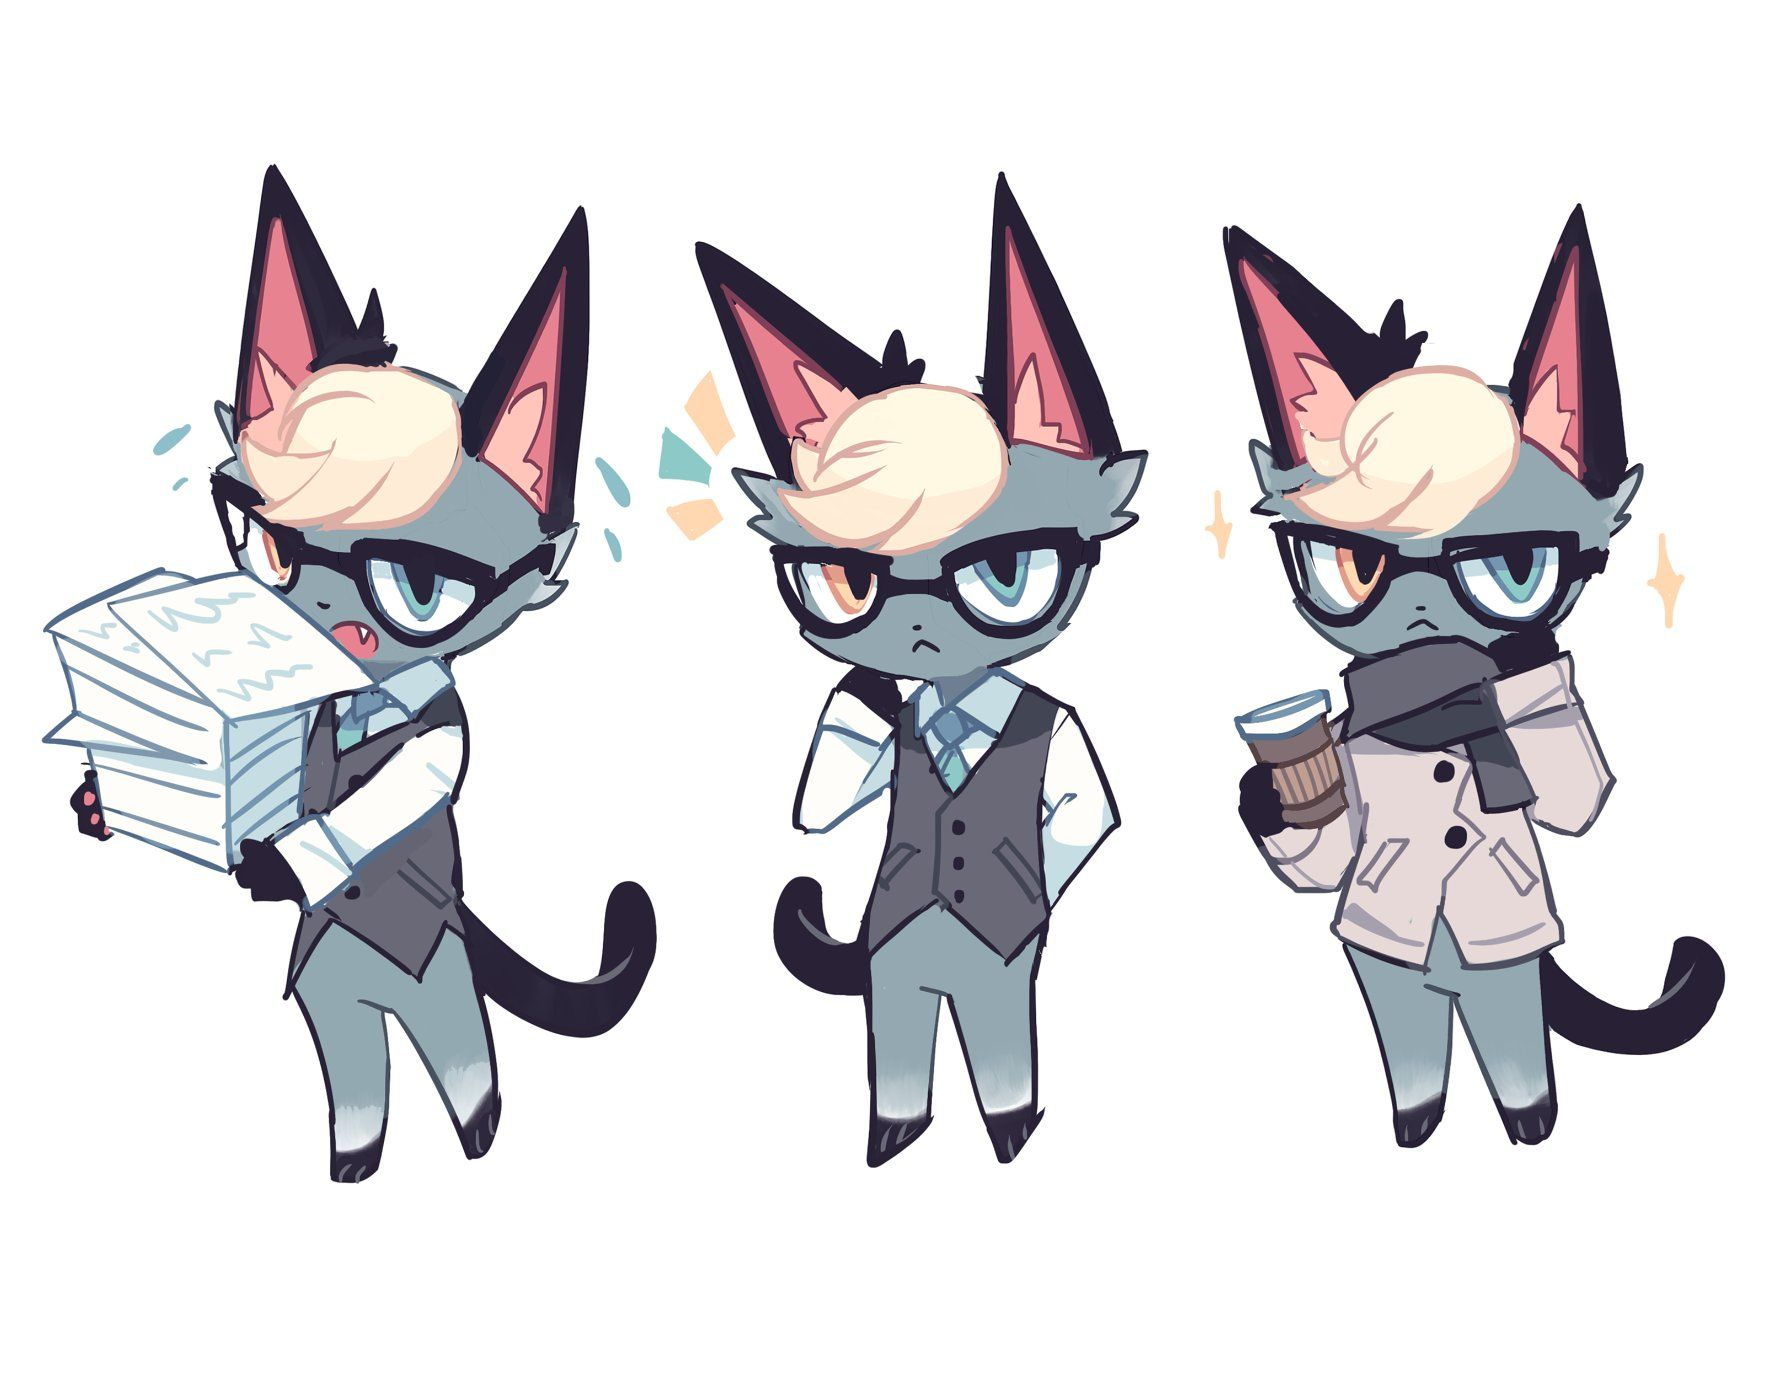 16+ Animal crossing new horizons cat villagers ideas in 2021